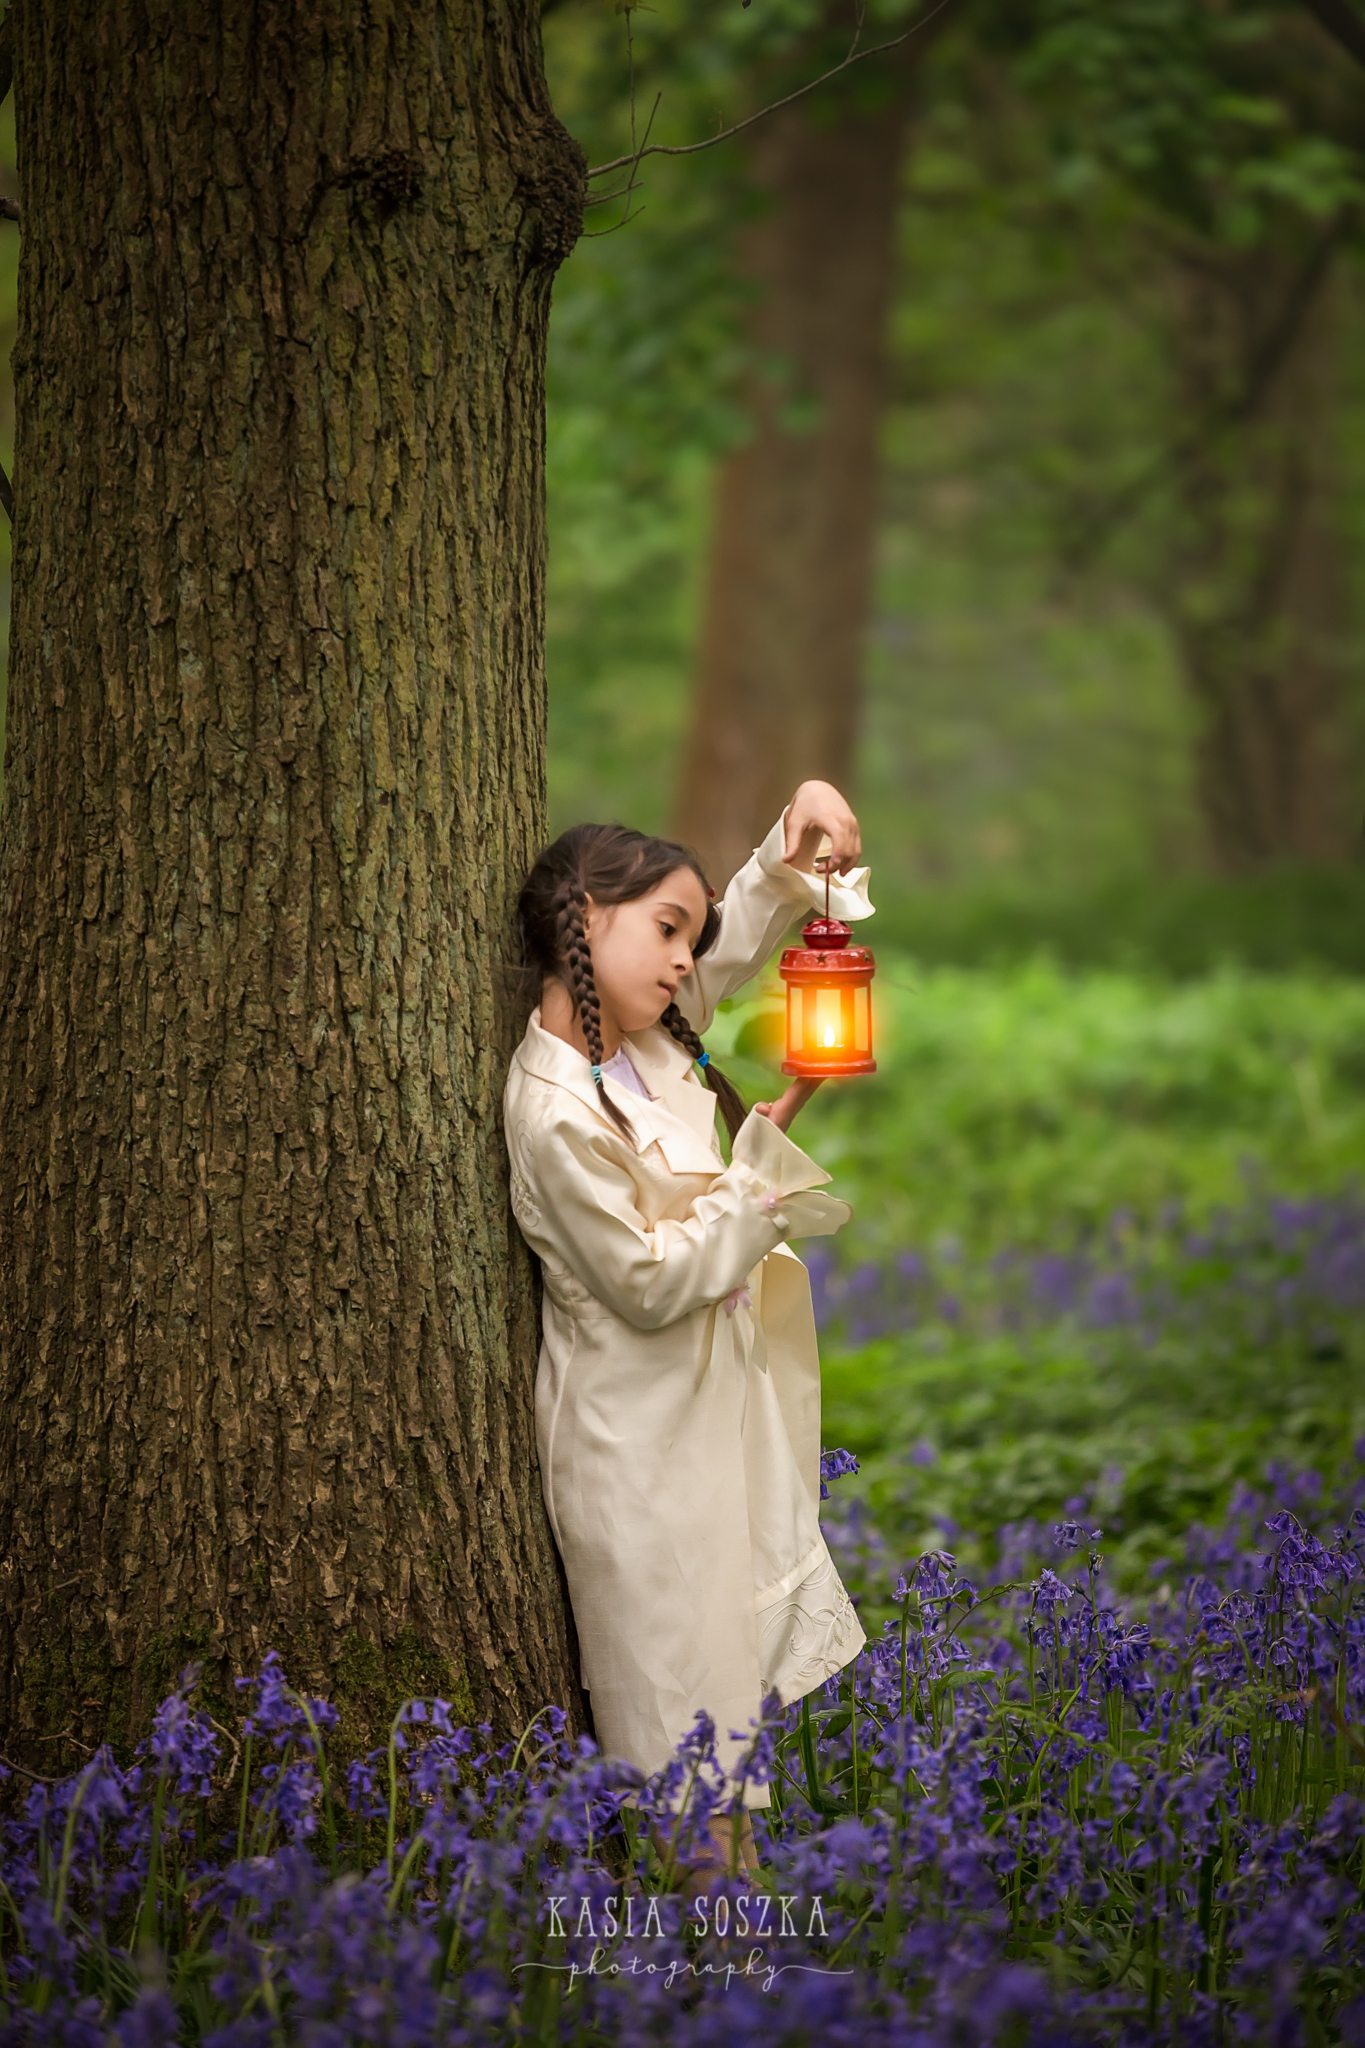 Yorkshire child photography: little girl holding a lantern in a bluebell forest